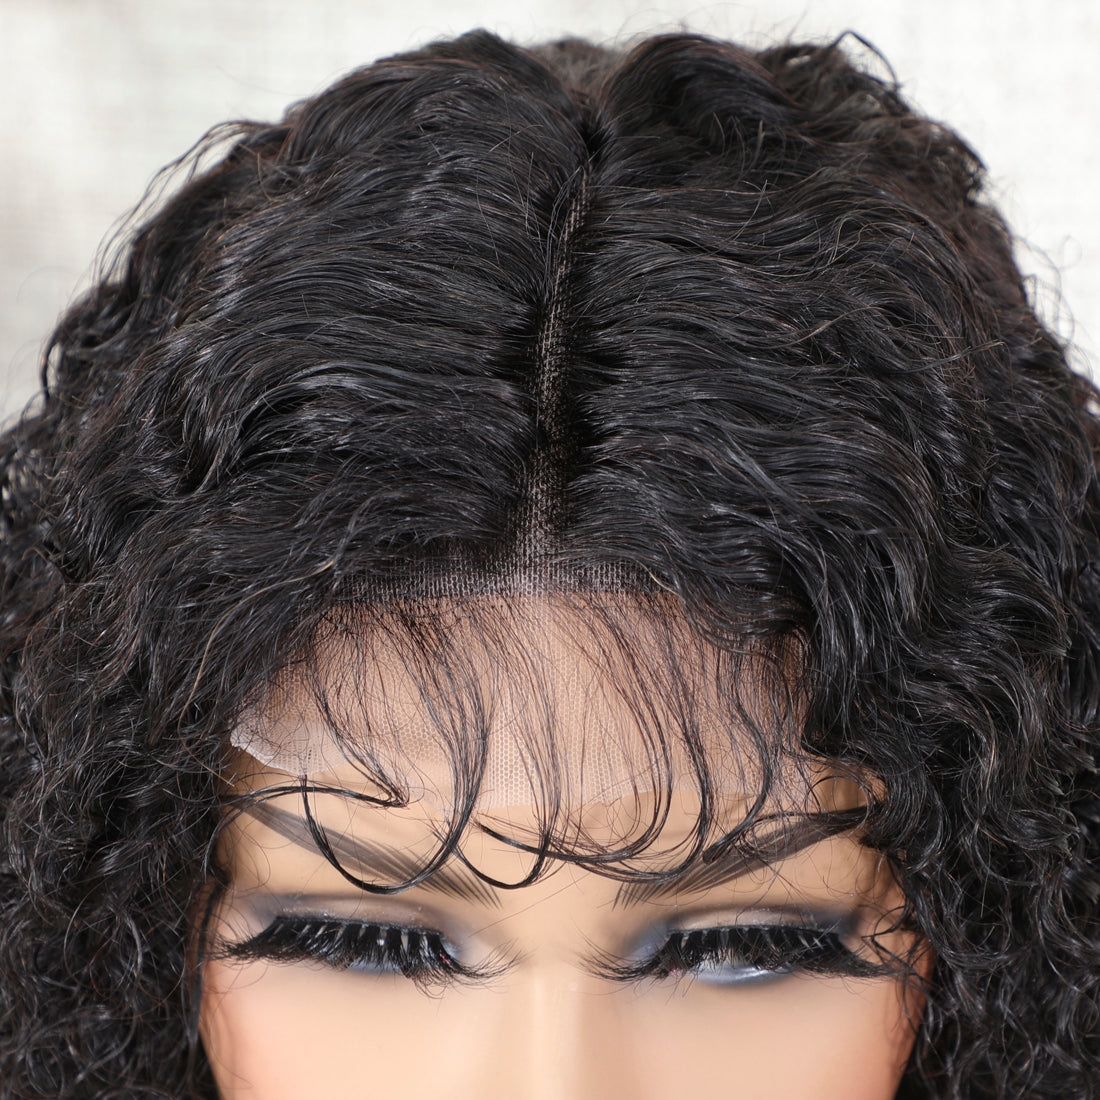 Short Deep Curly Lace Closure Human Hair Wigs Remy Brazilian Curly Hair Wigs